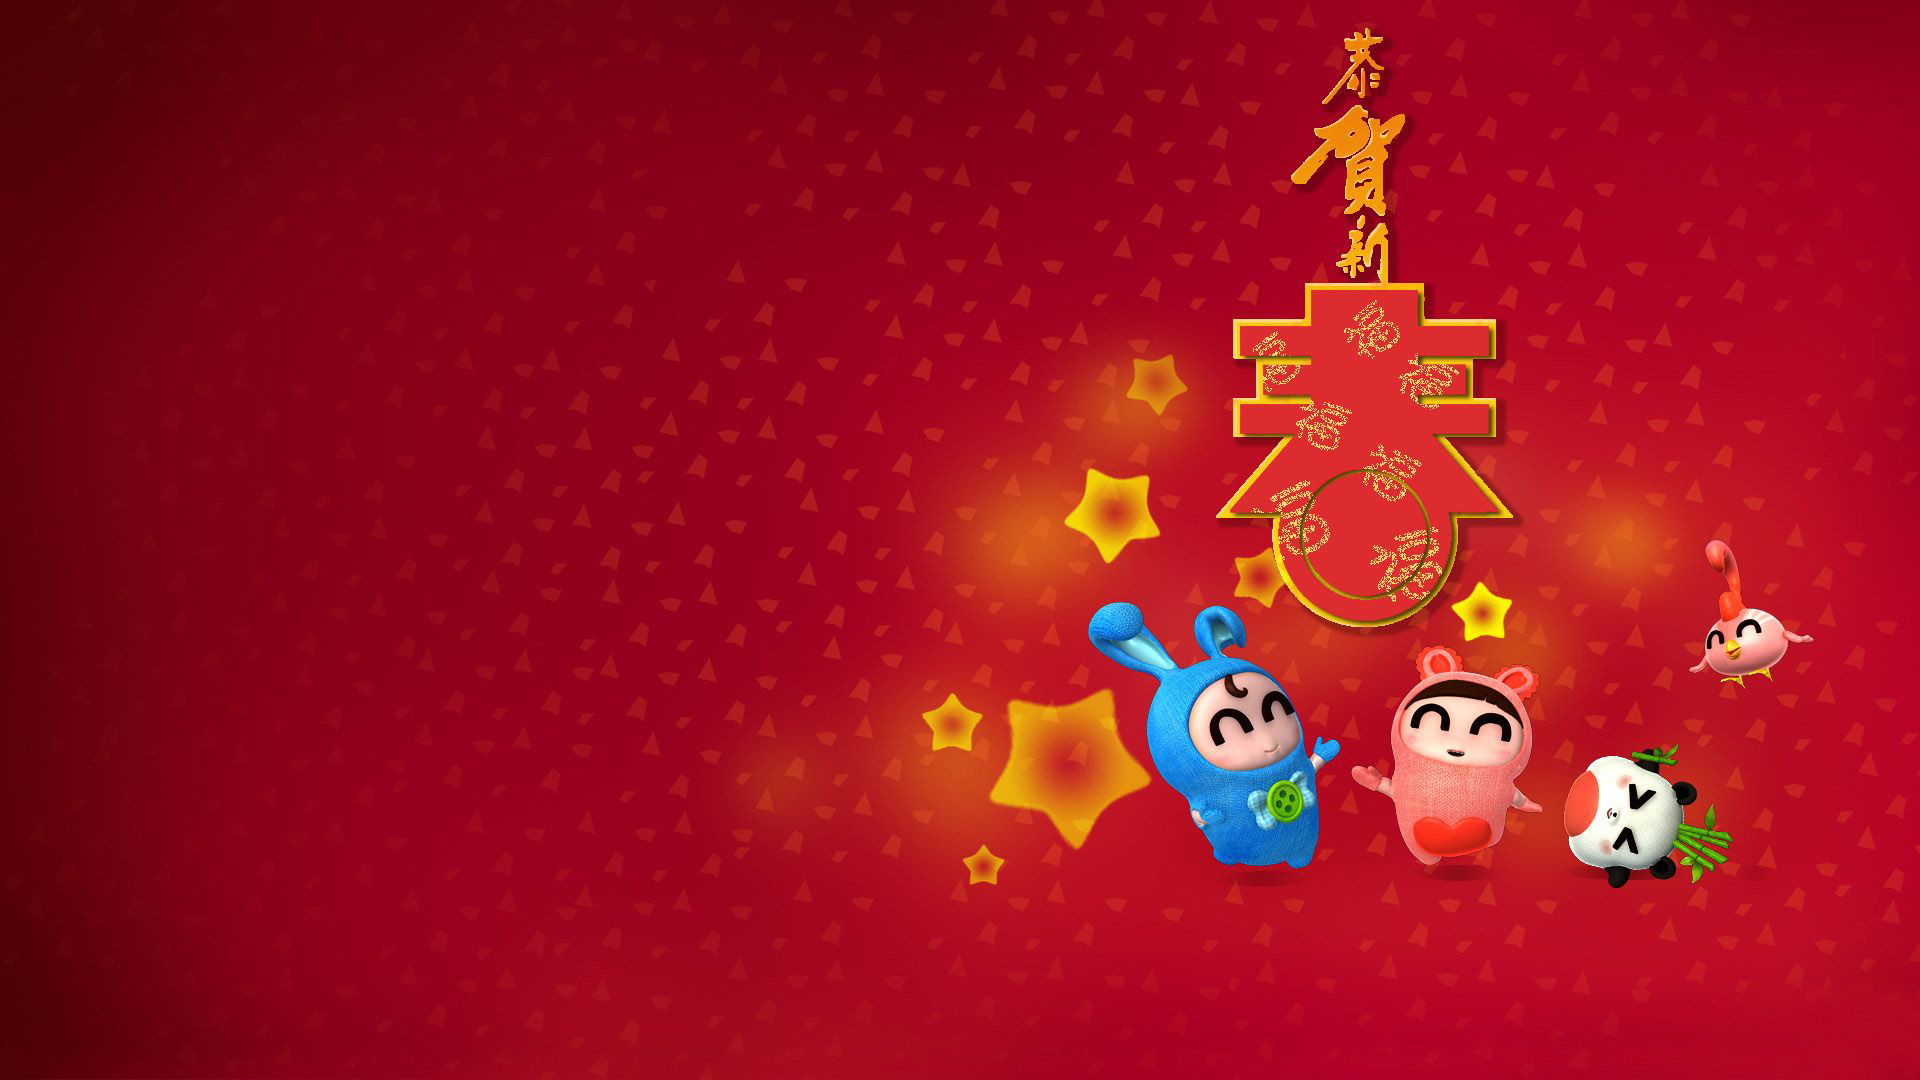 1920x1080 chinese cartoon new year hd wallpapers download new